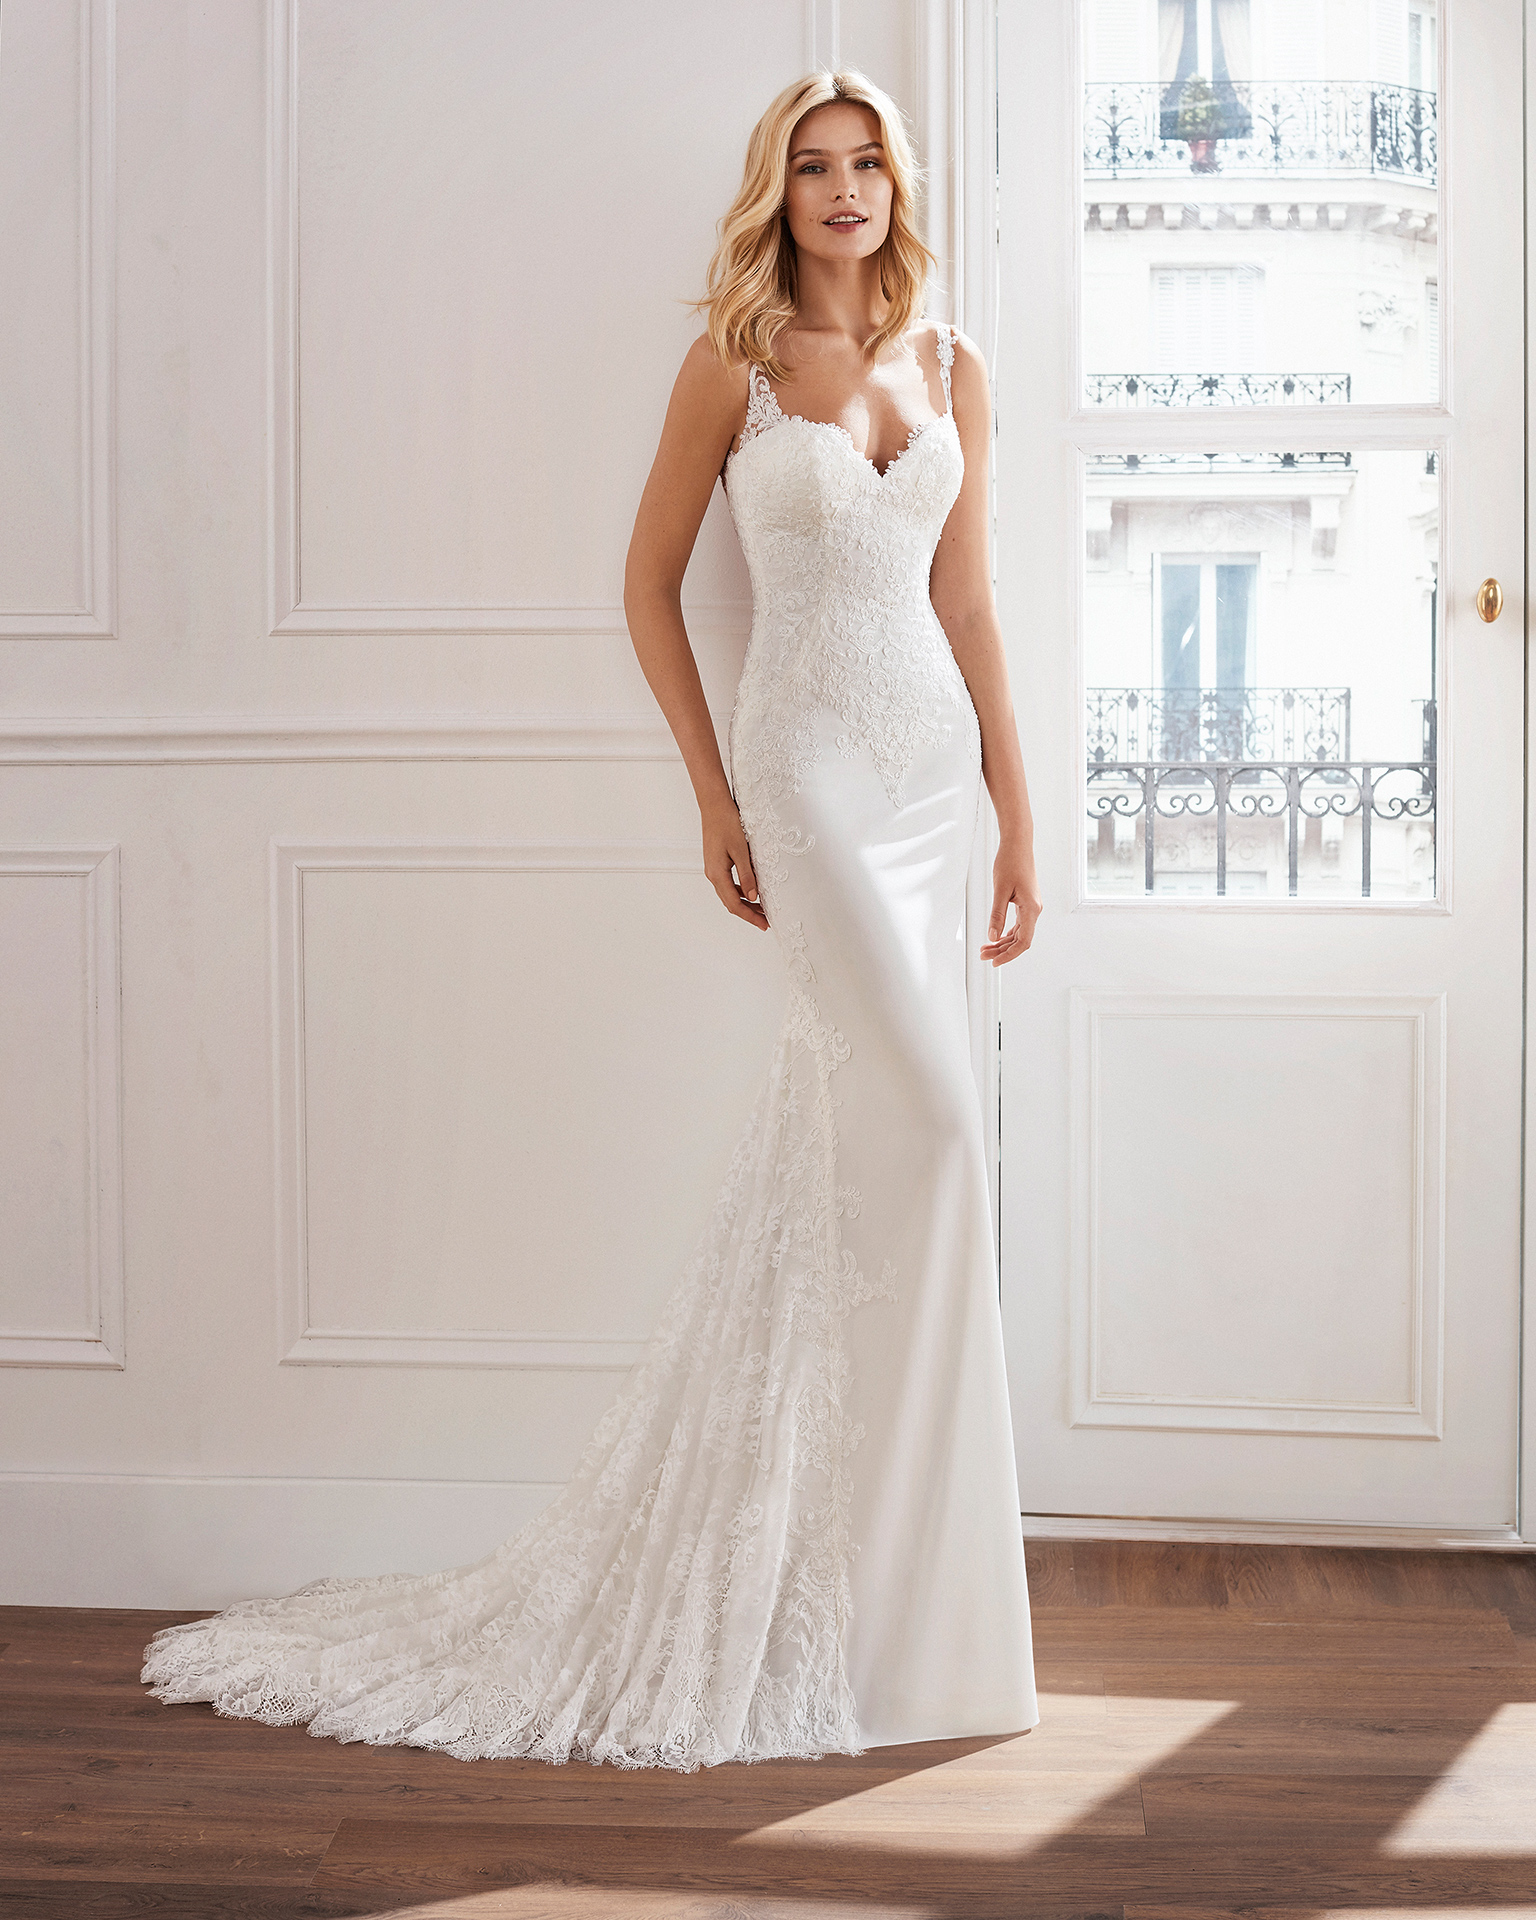 Sheath-style wedding dress in crepe. Beaded lace bodice and skirt with lace insets. Available in natural. 2019  Collection.